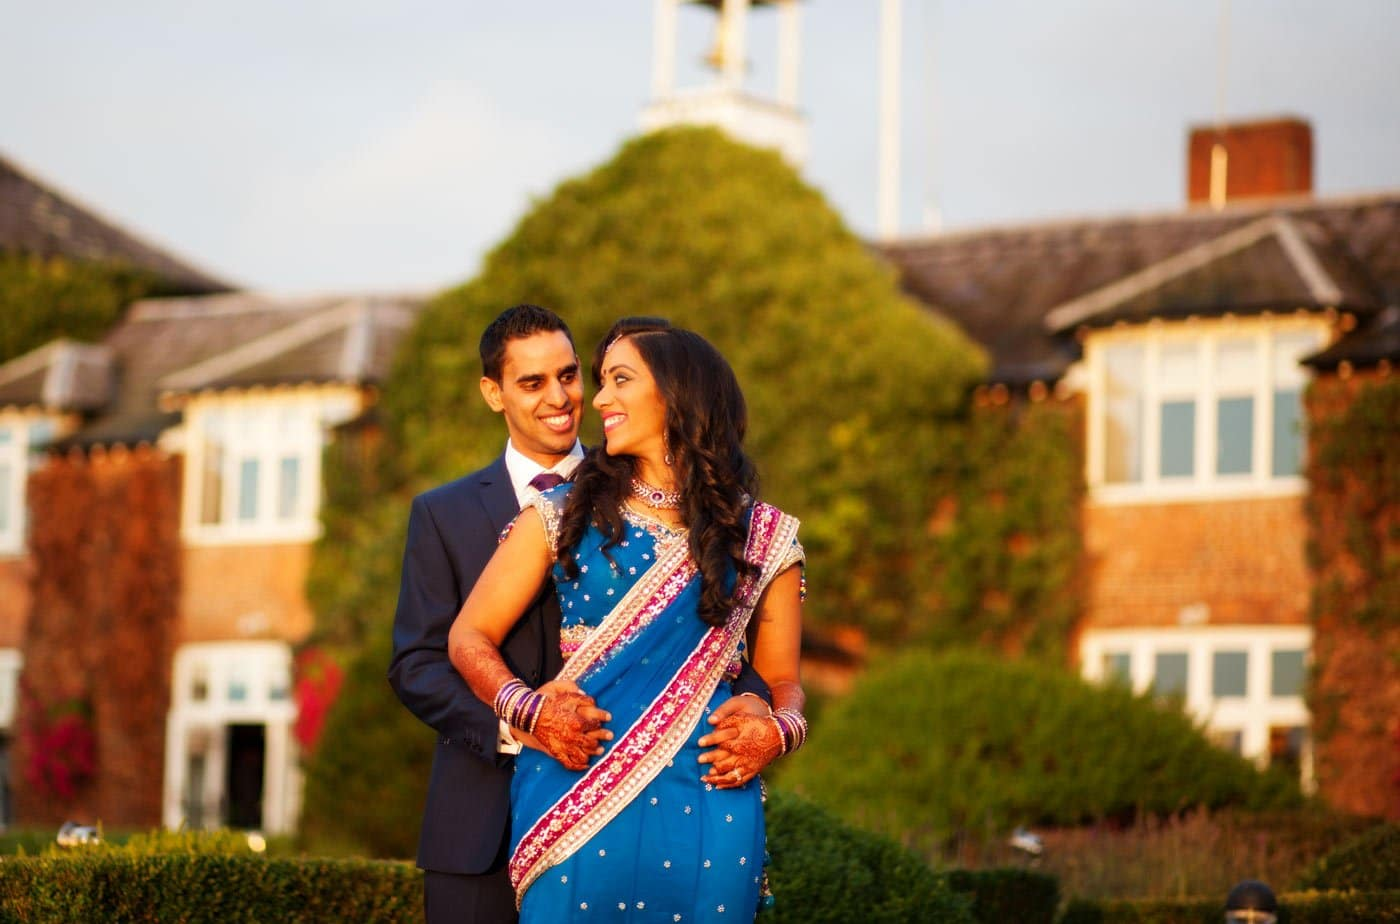 Hindu Wedding Photography and Video at The Belfry Hotel // Alpesh & Nisha